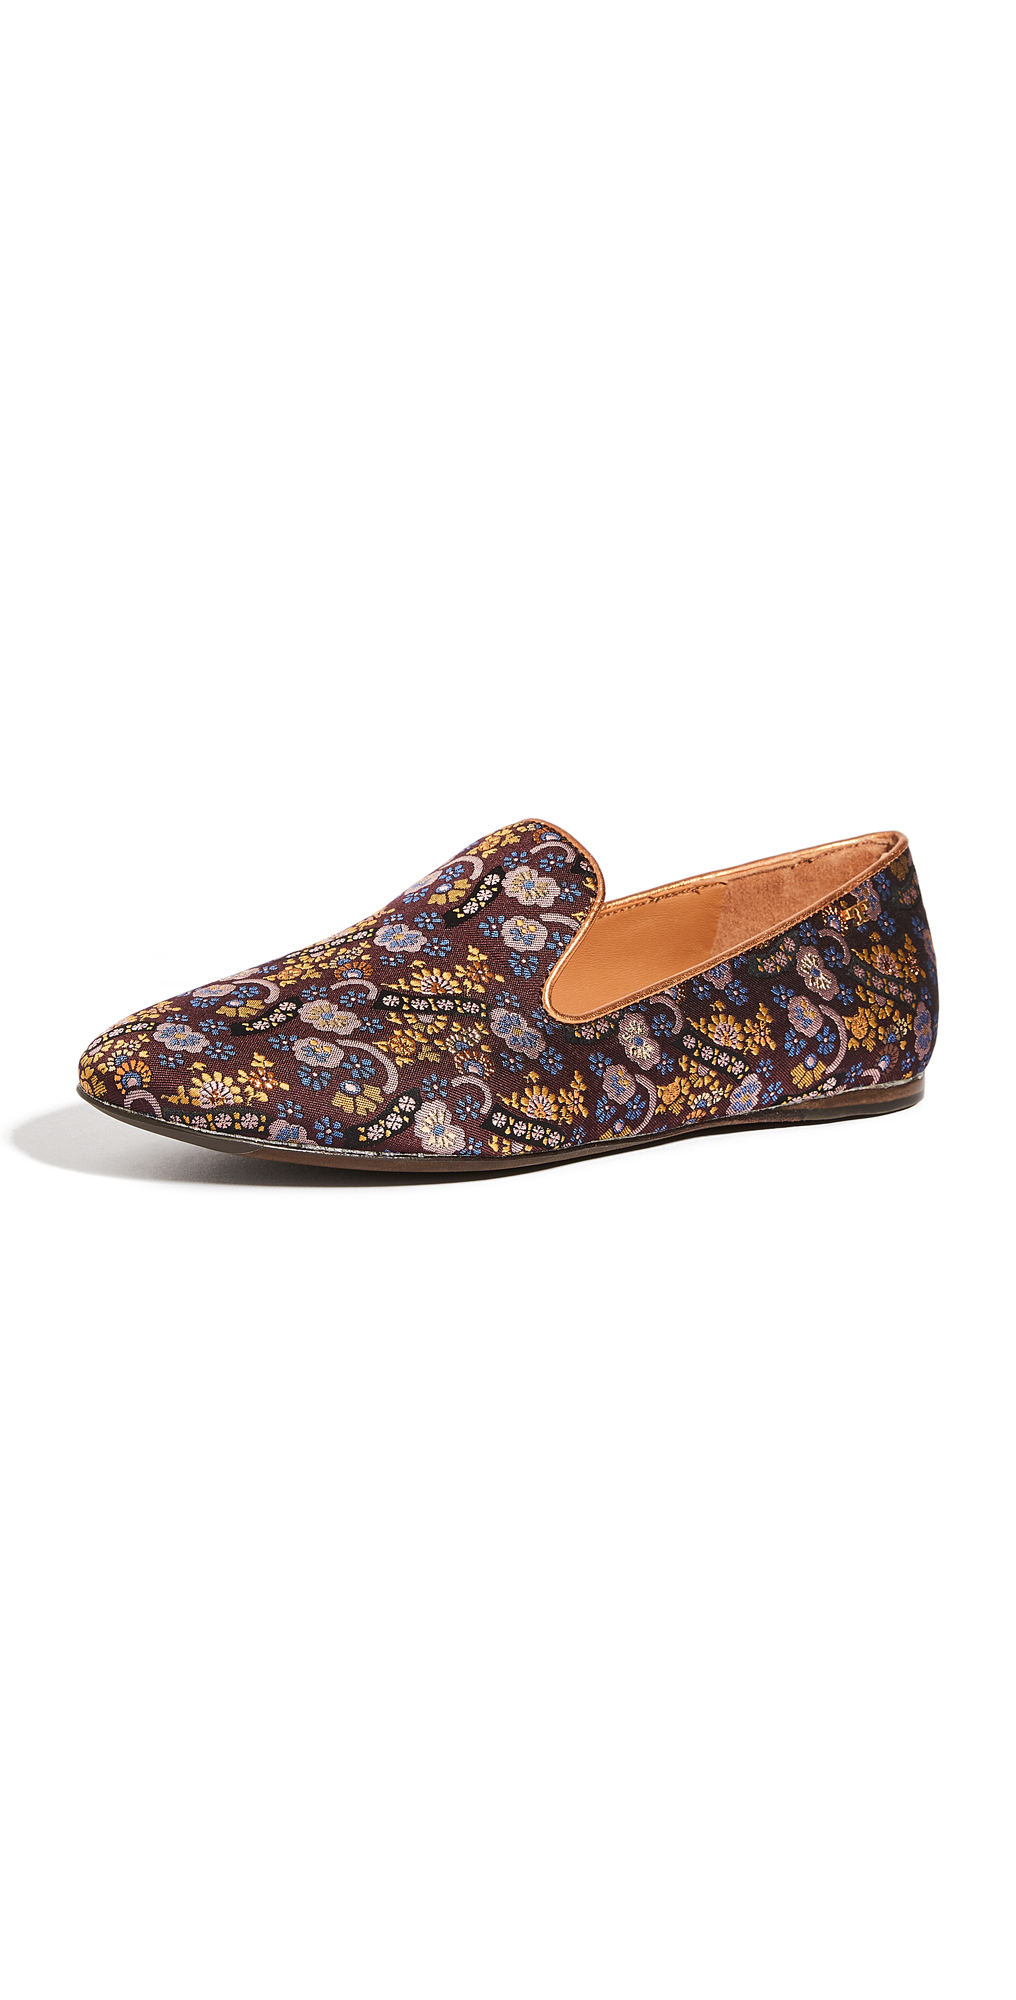 Tory Burch 5mm Smoking Slippers